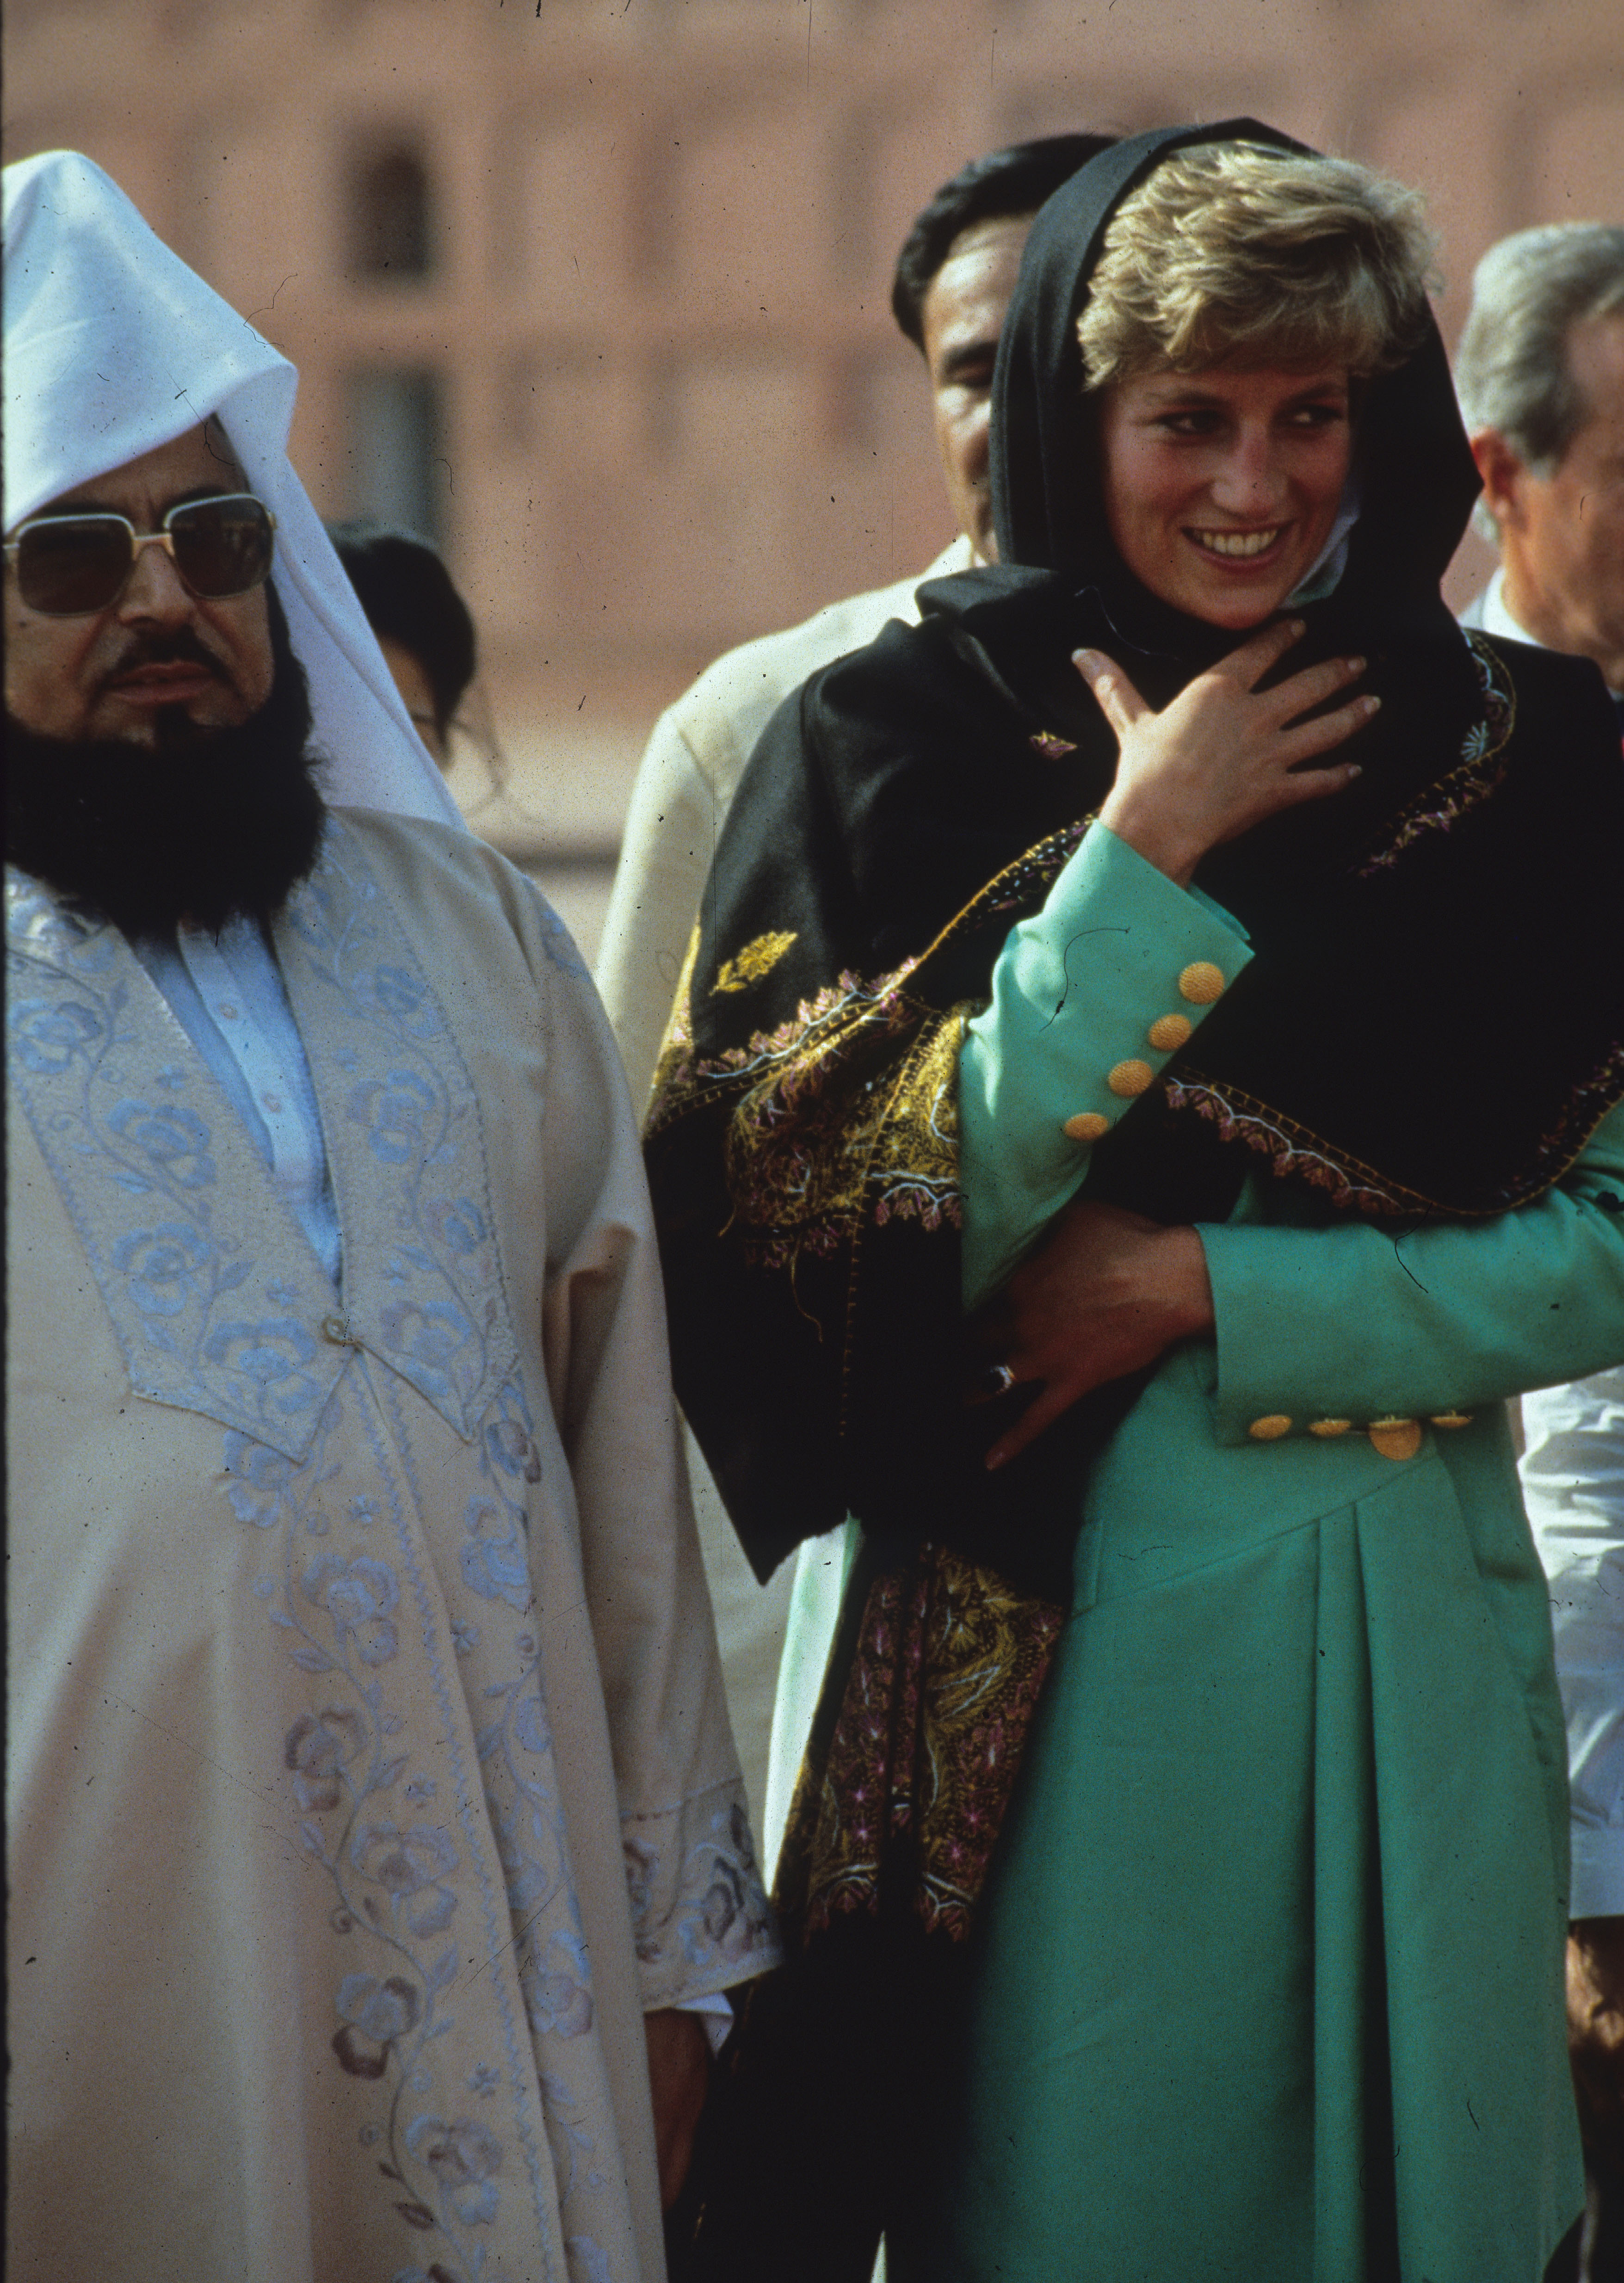 Diana modestly covered her head during a visit to the Badshahi Mosque in Pakistan in 1991.